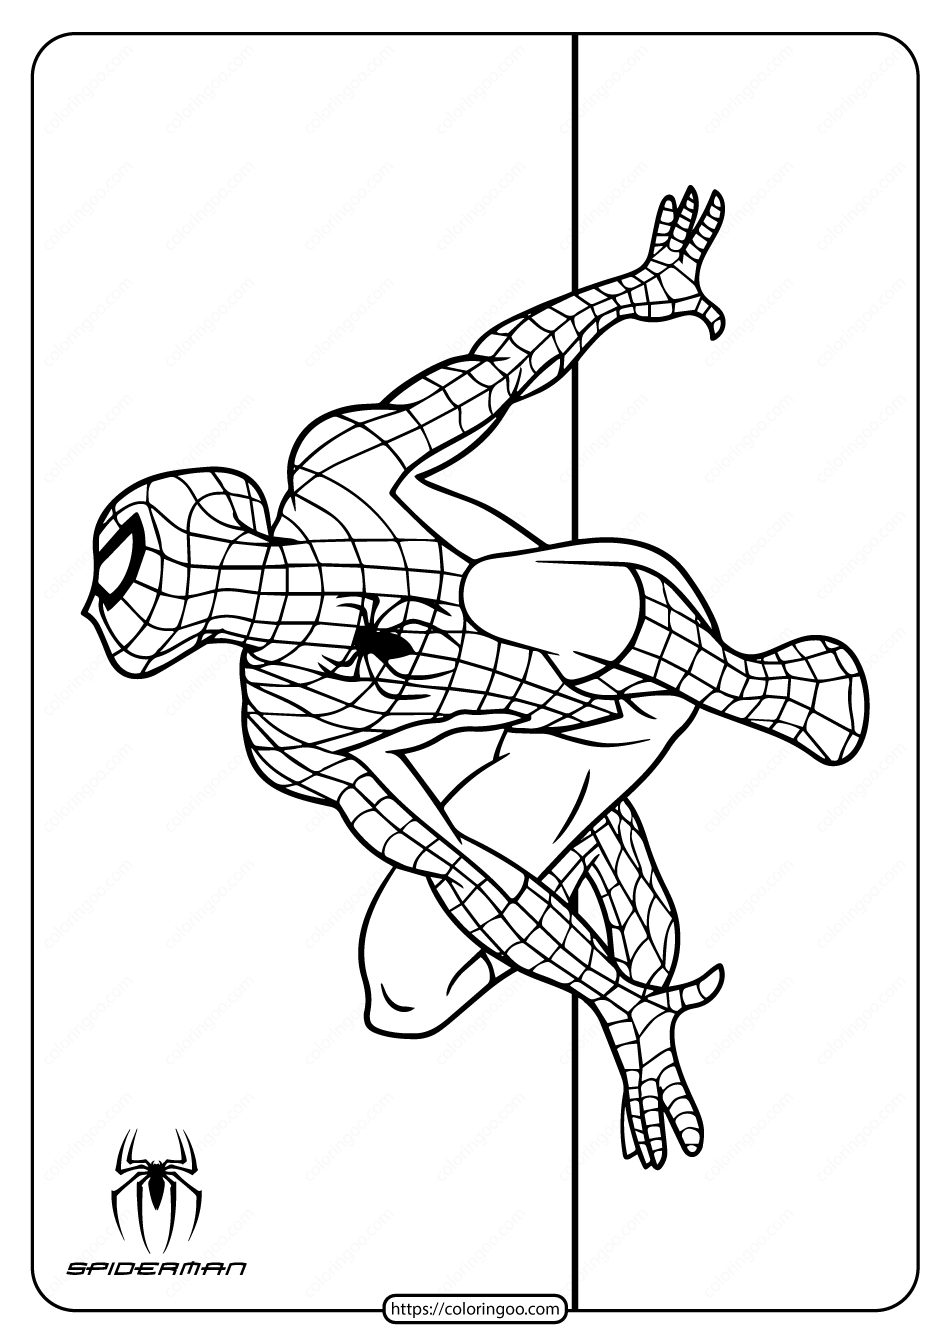 Spiderman Climbing Wall Coloring Page